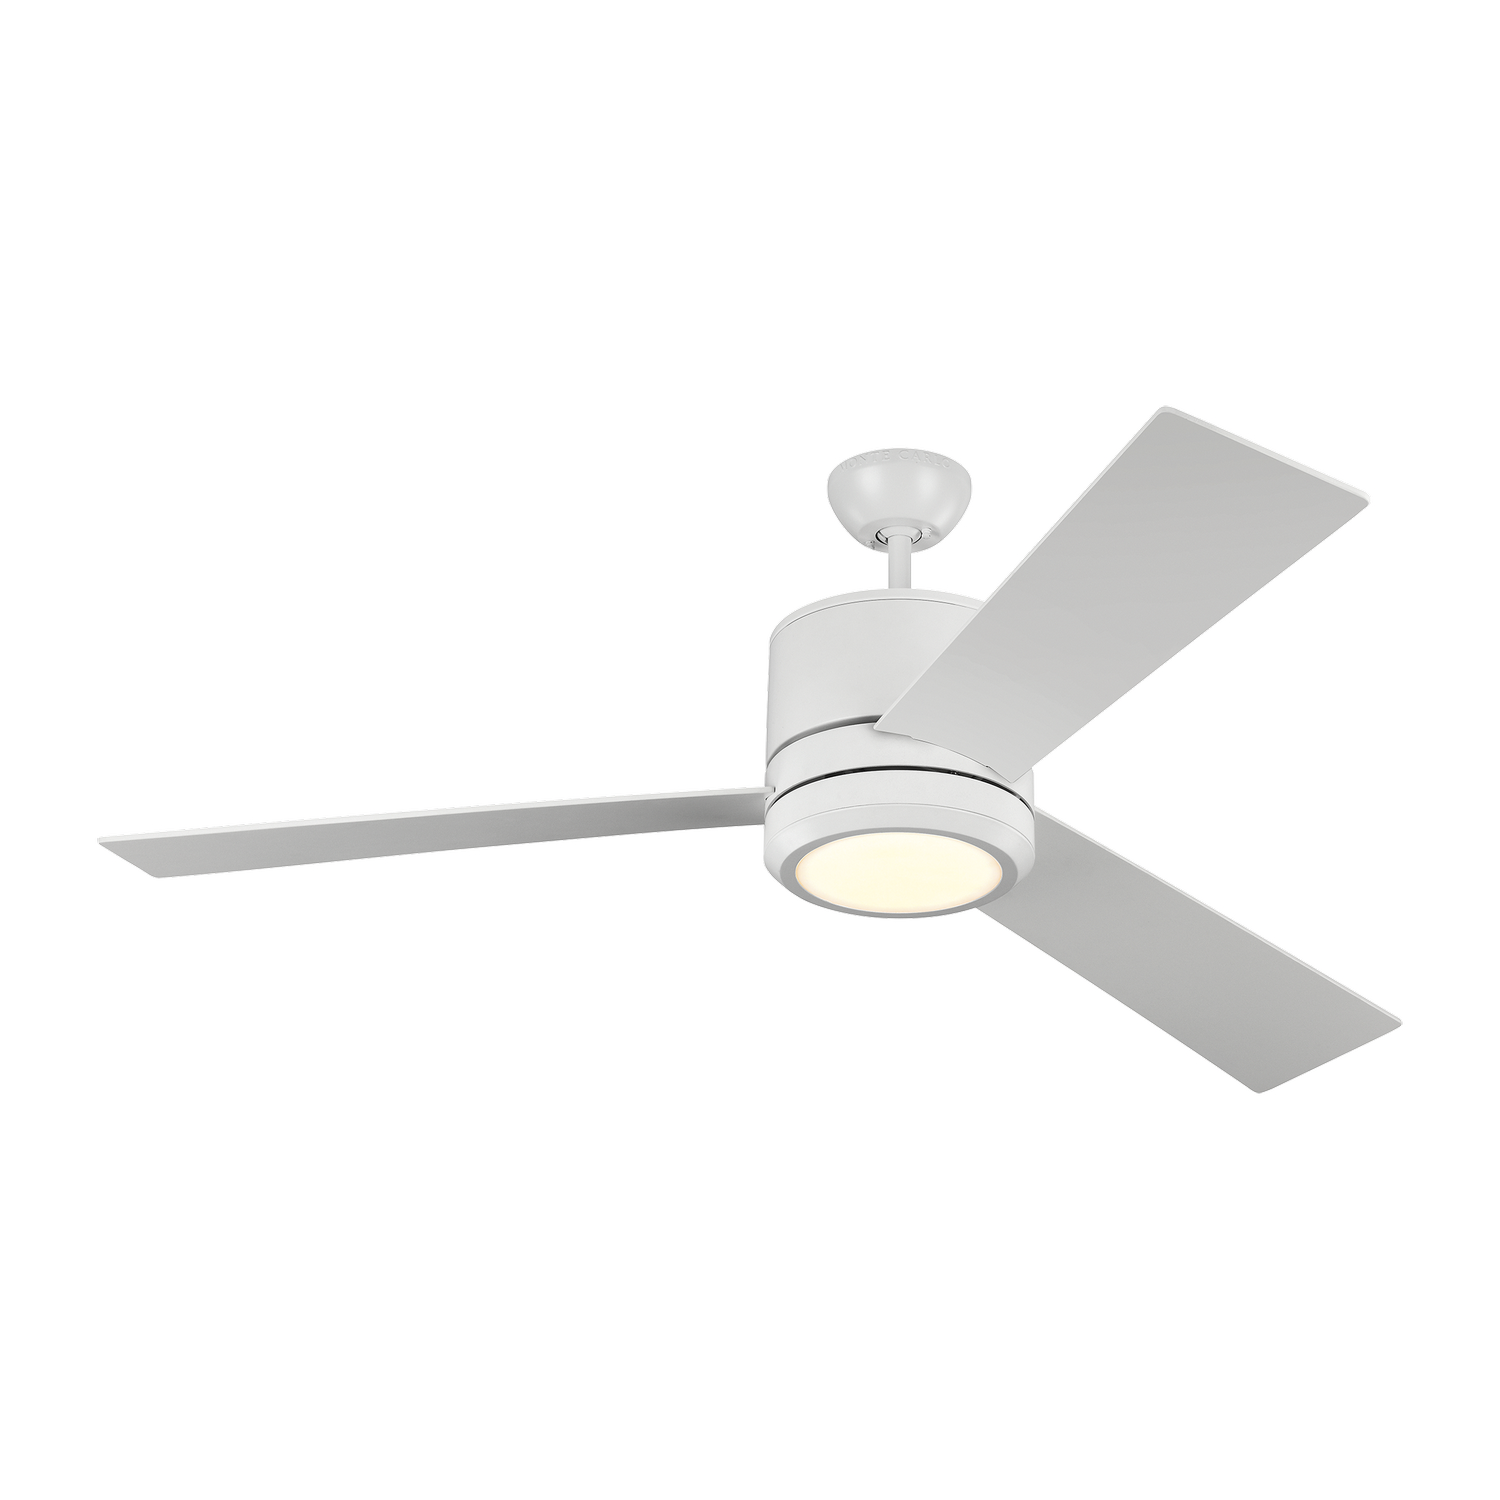 56 inchCeiling Fan from the Vision Max collection by Monte Carlo 3VNMR56RZWD V1